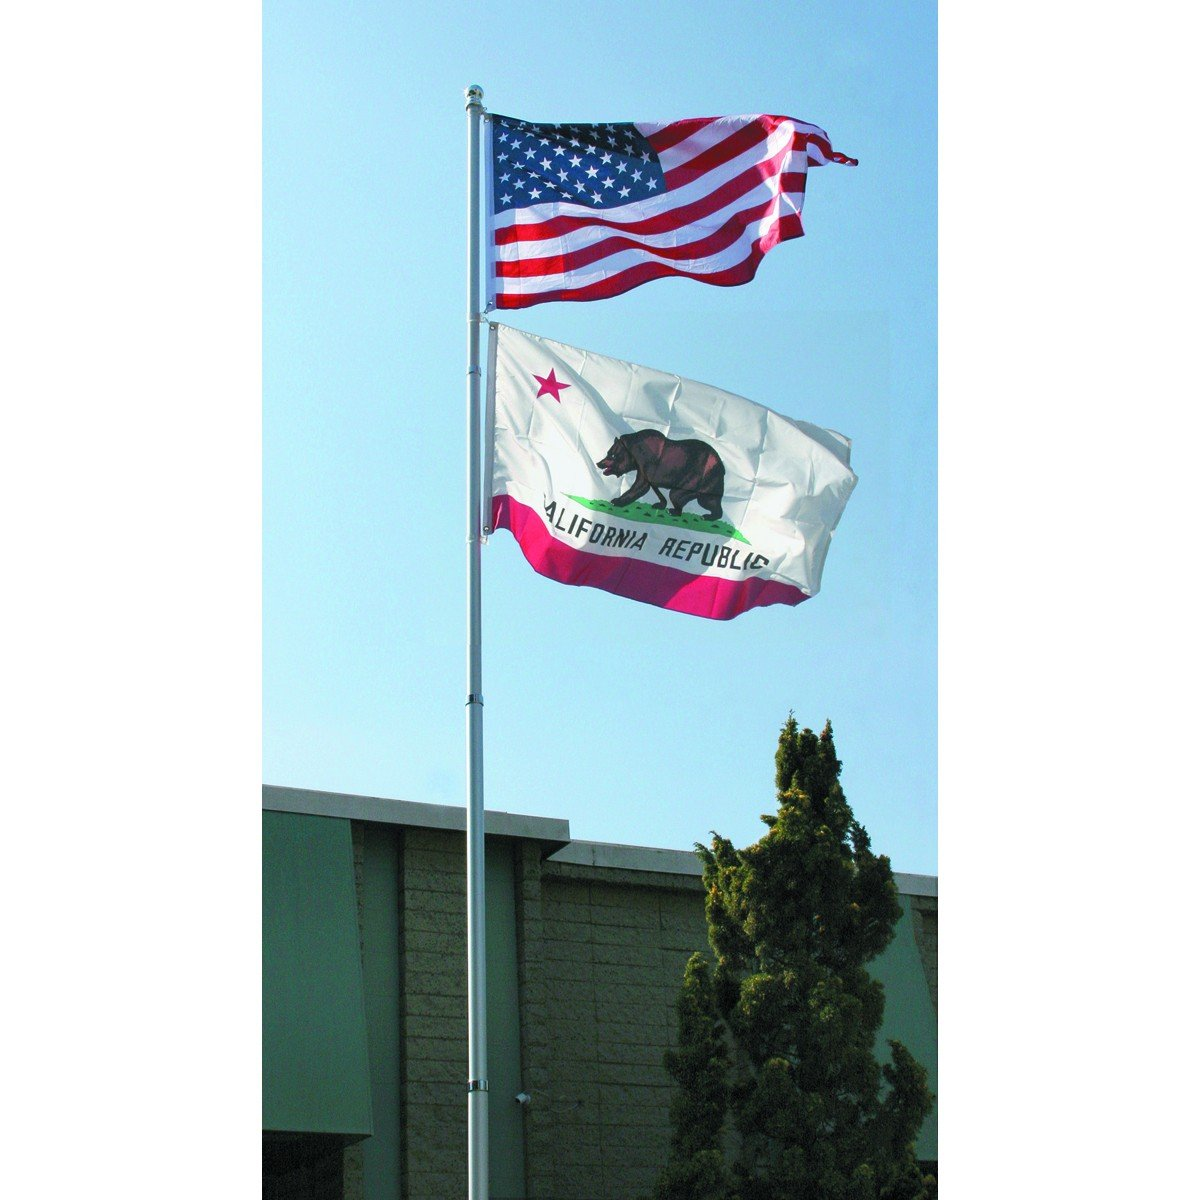 20 Ft. Telescoping Flag Pole from TNM